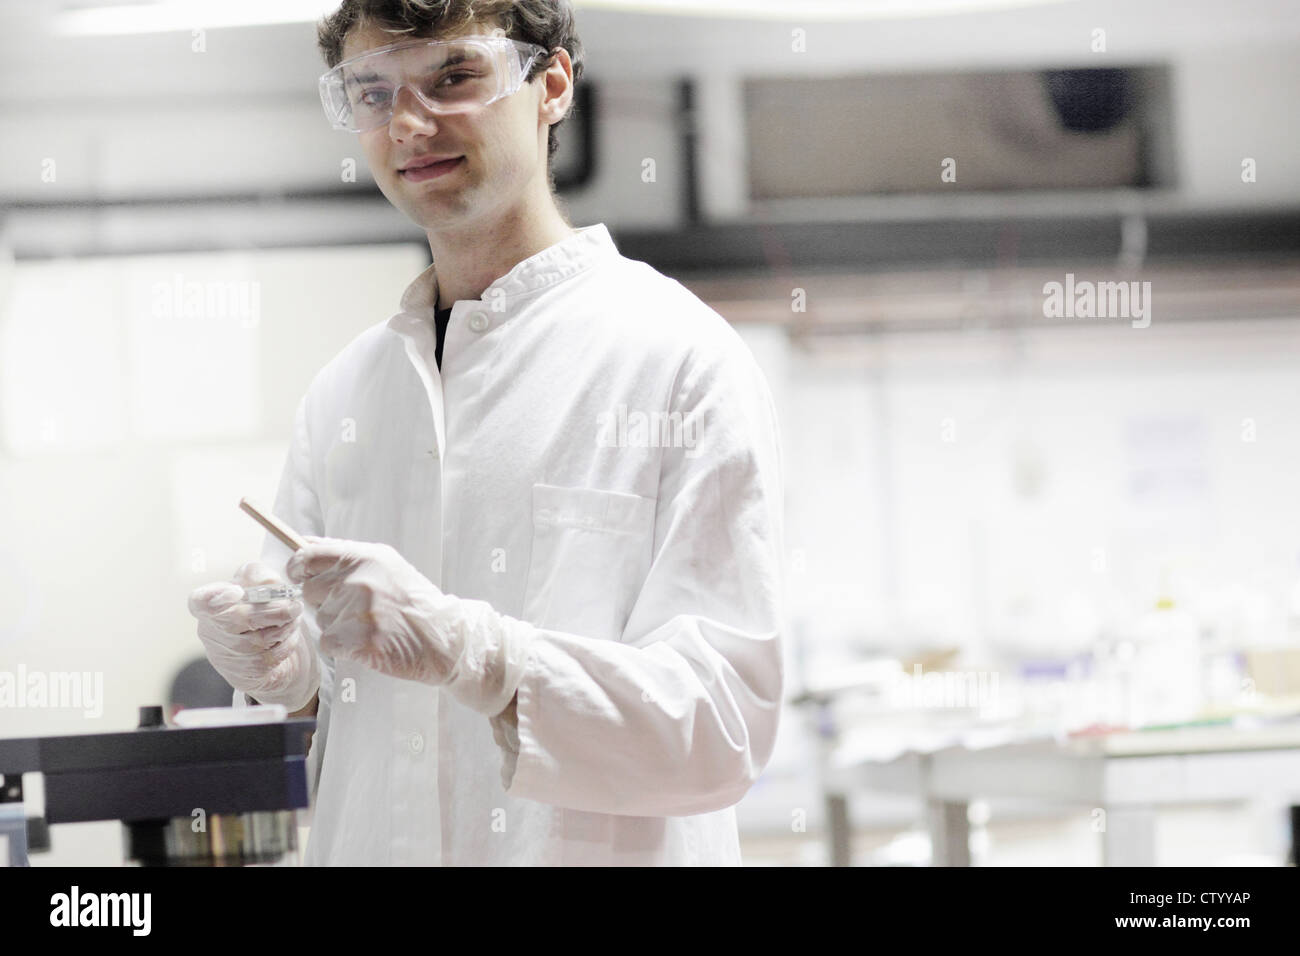 Scientist holding dropper in lab Photo Stock